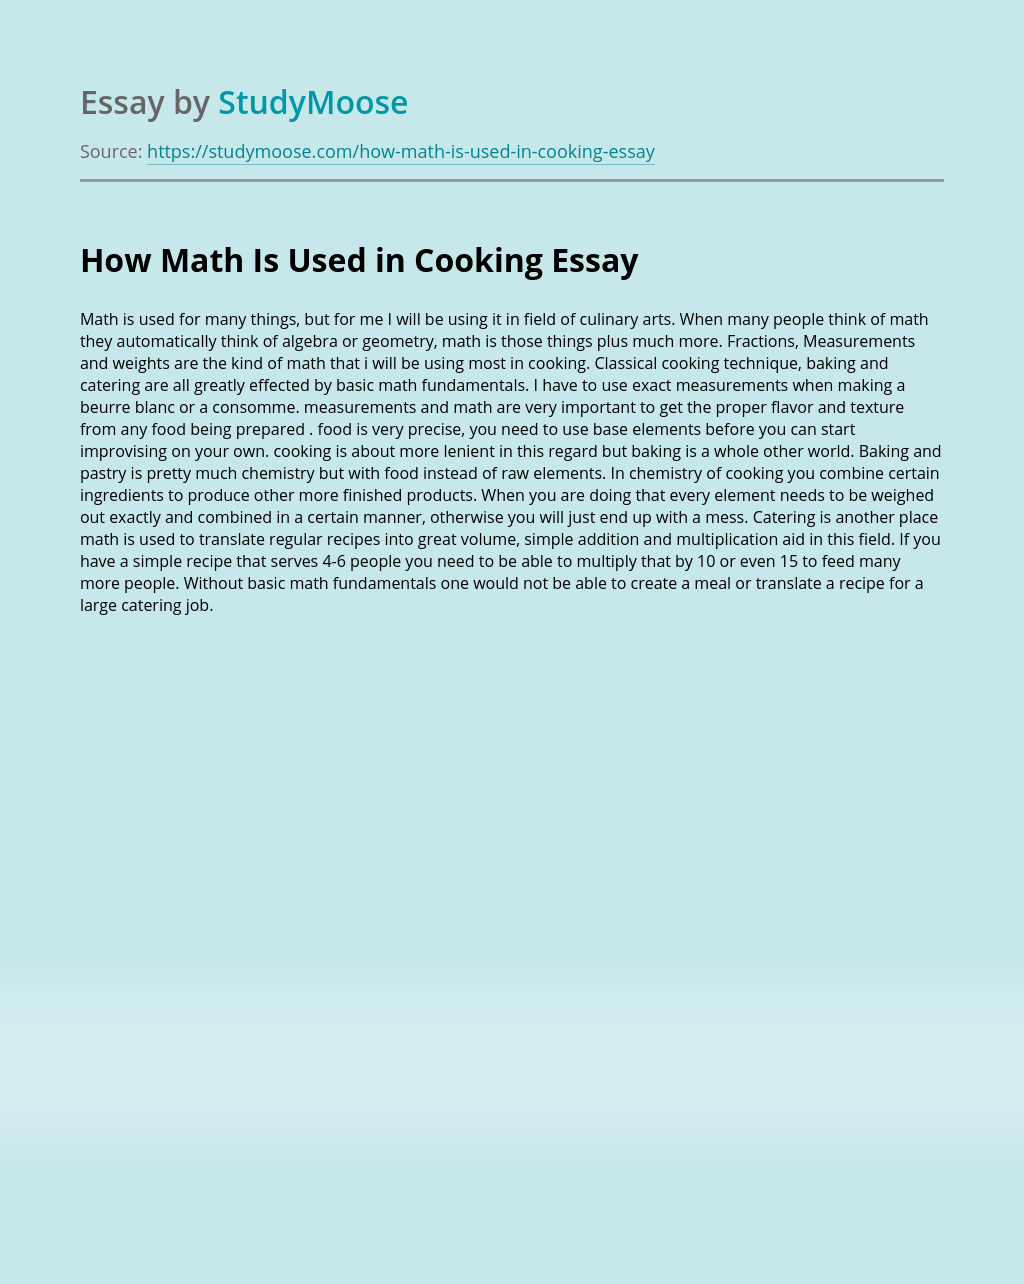 How Math Is Used in Cooking?